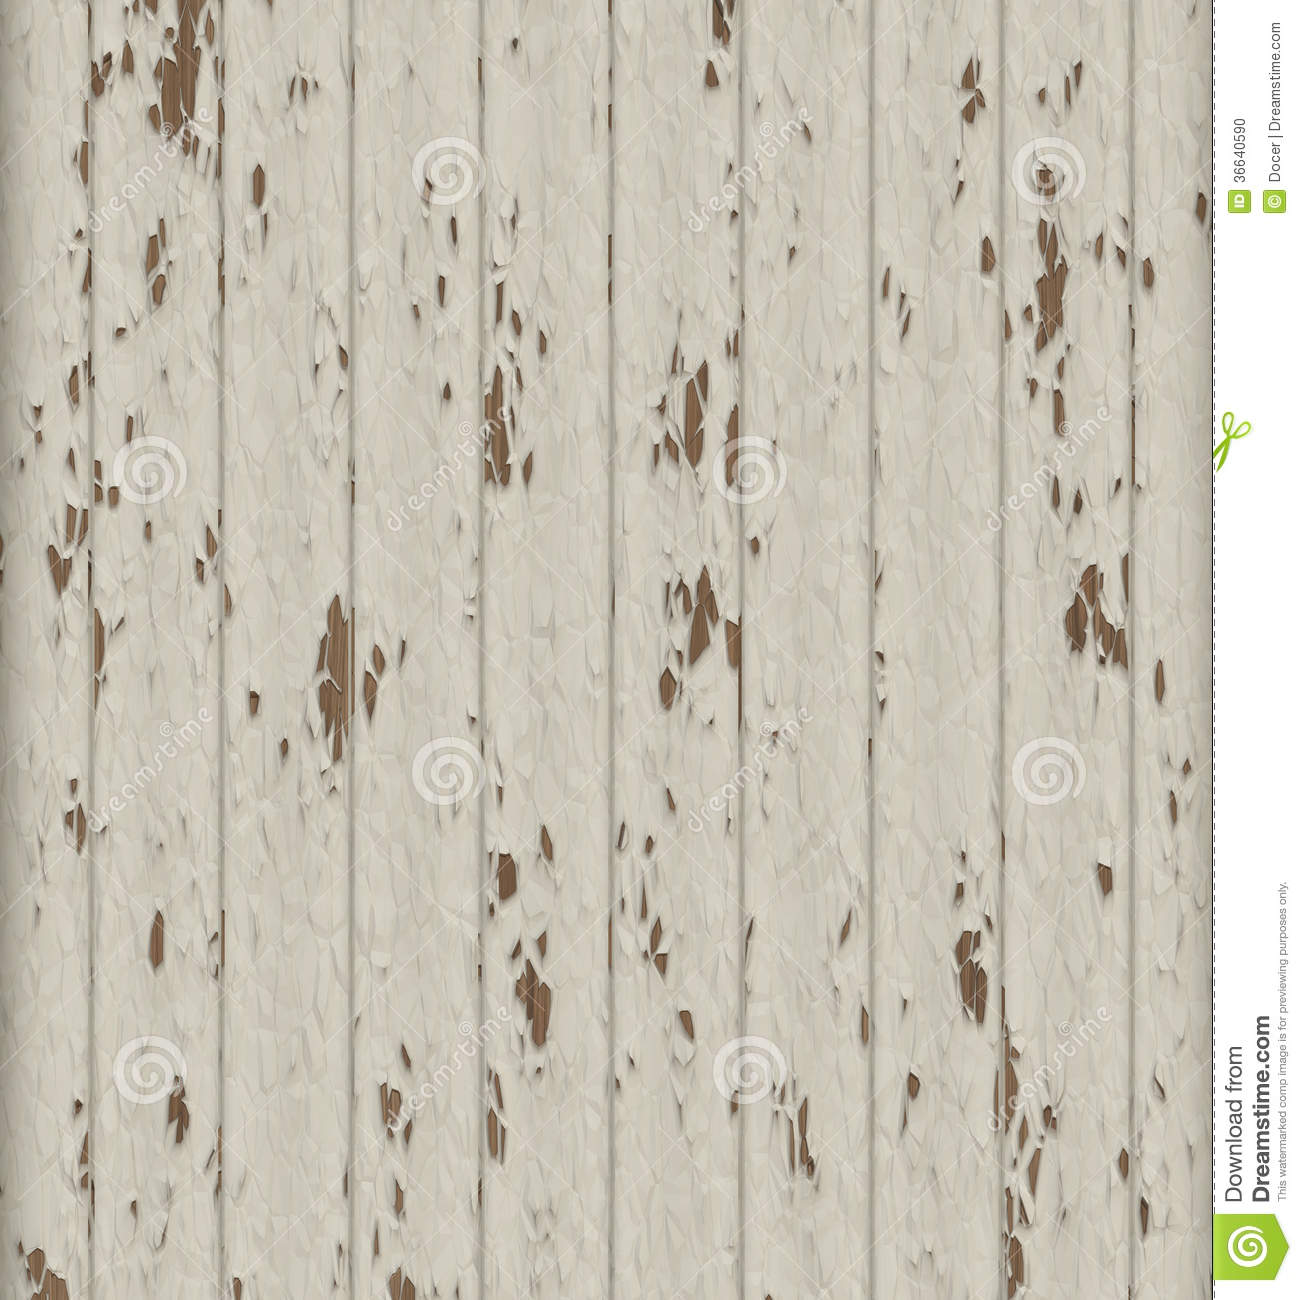 Wood Fence Background. Wallpaper Texture Stock Photo - Image: 36640590